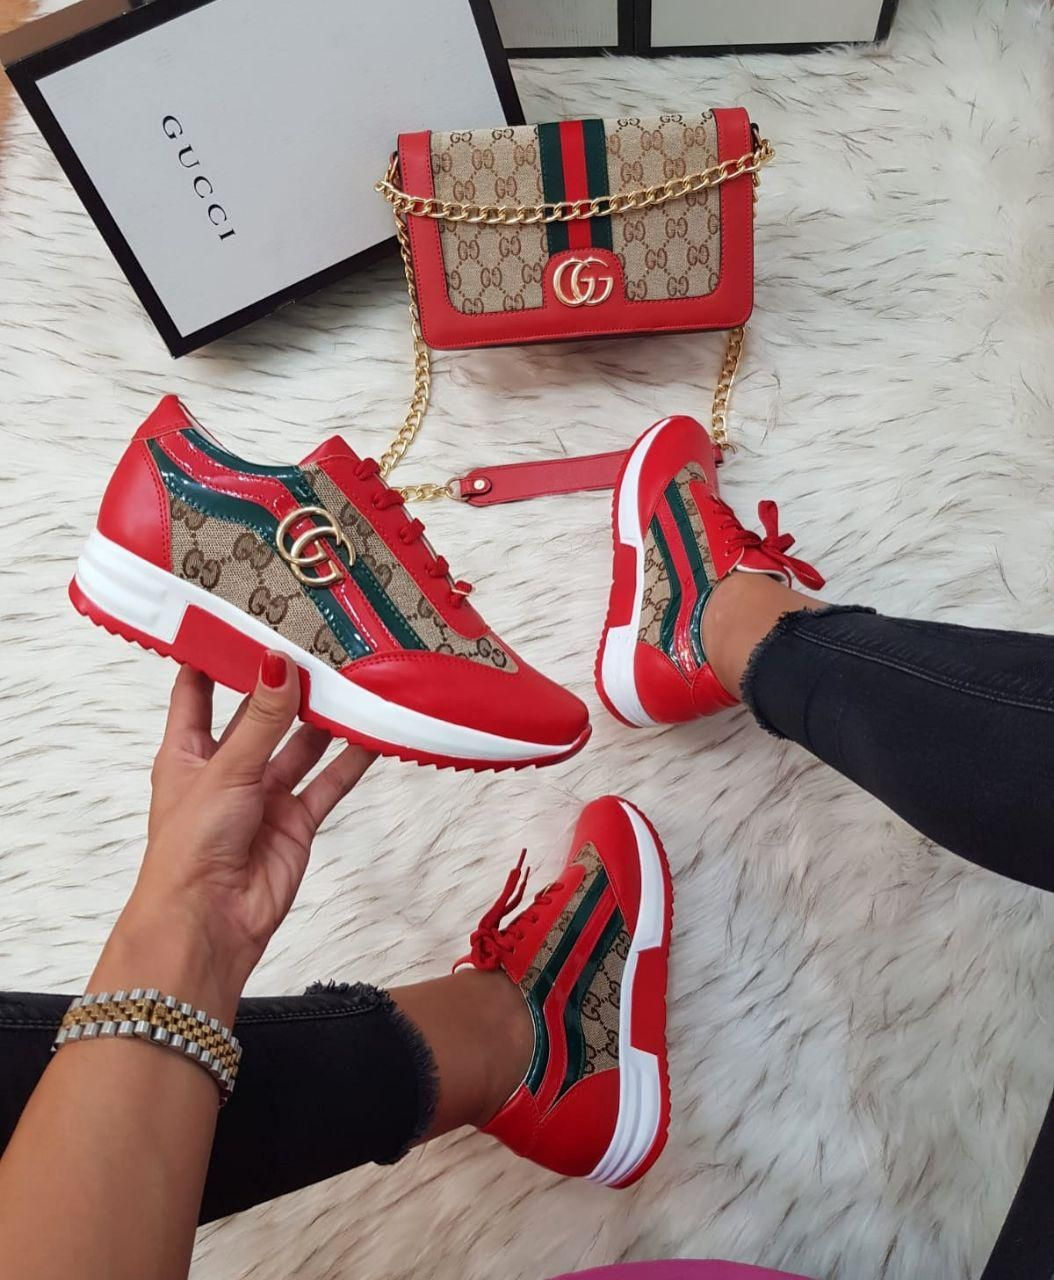 Gucci Shoes Wallpapers - Top Free Gucci